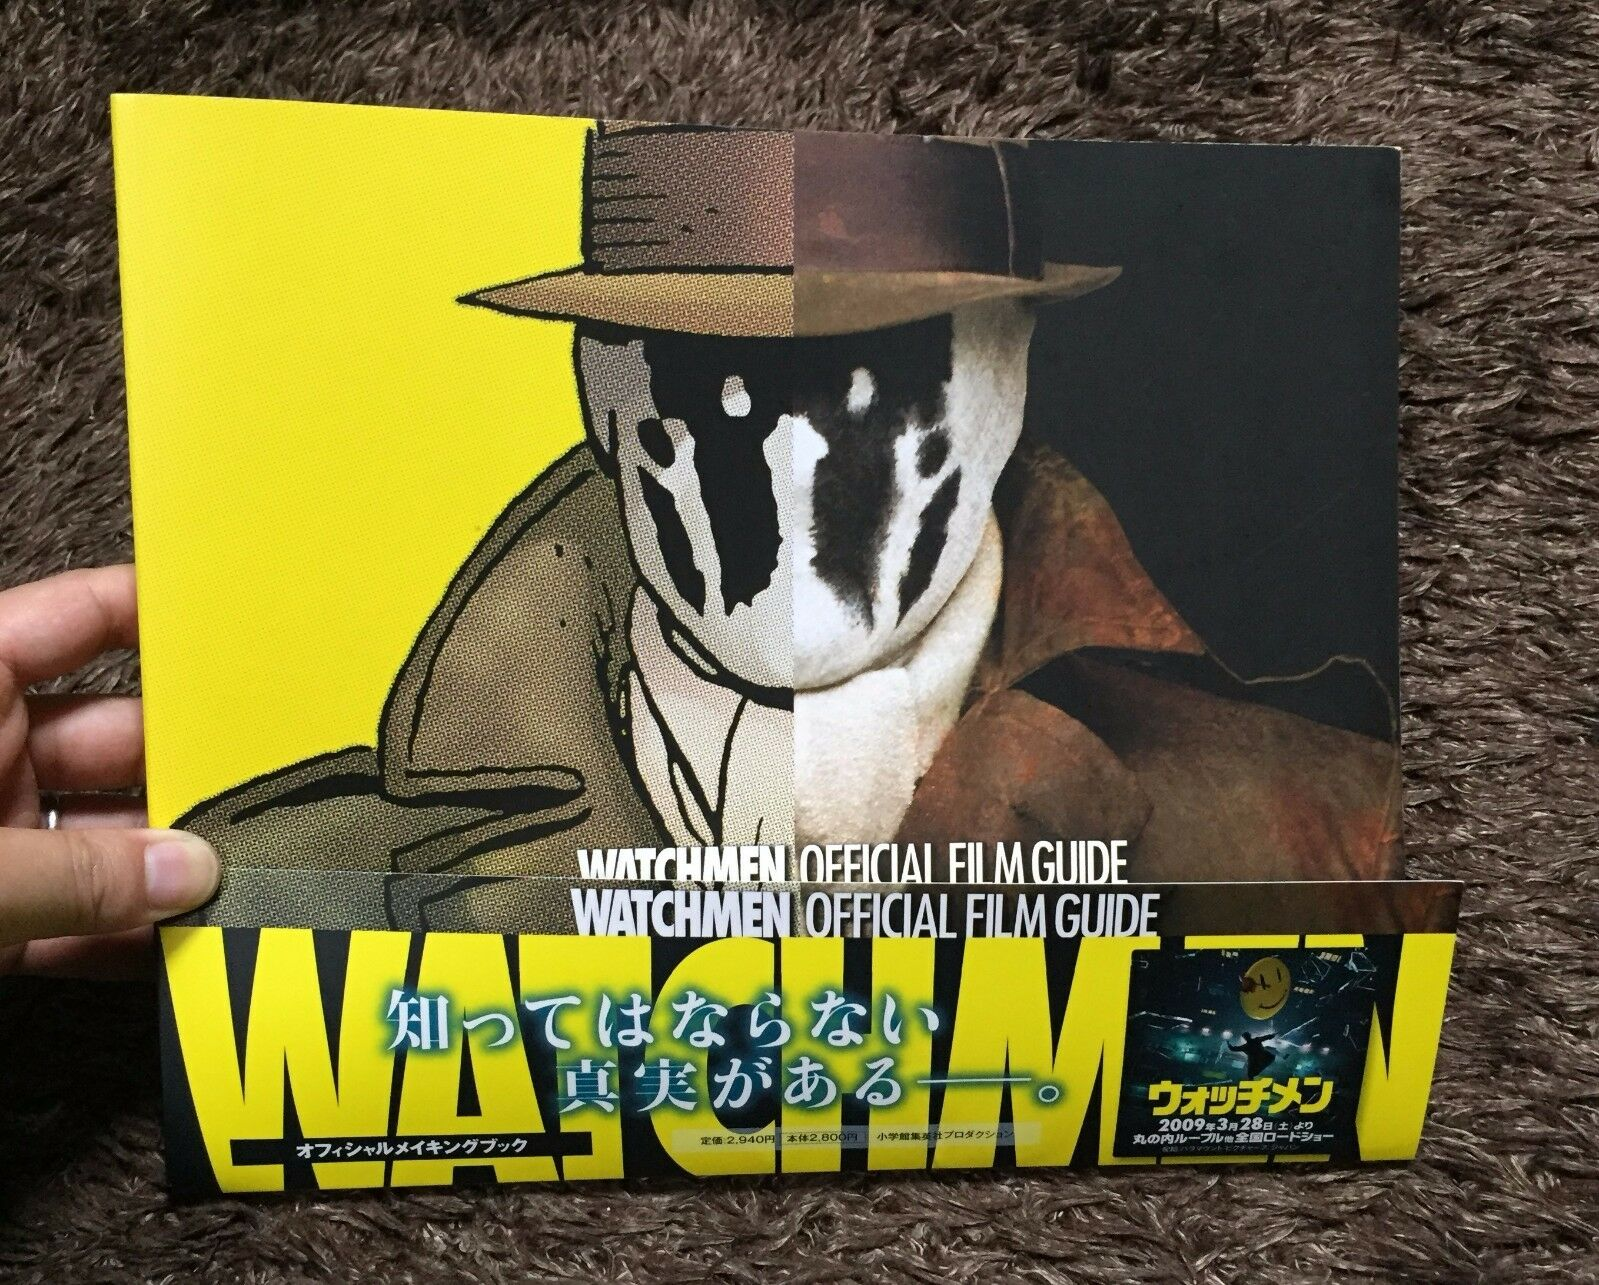 WATCHMEN OFFICIAL FILM GUIDE BOOK